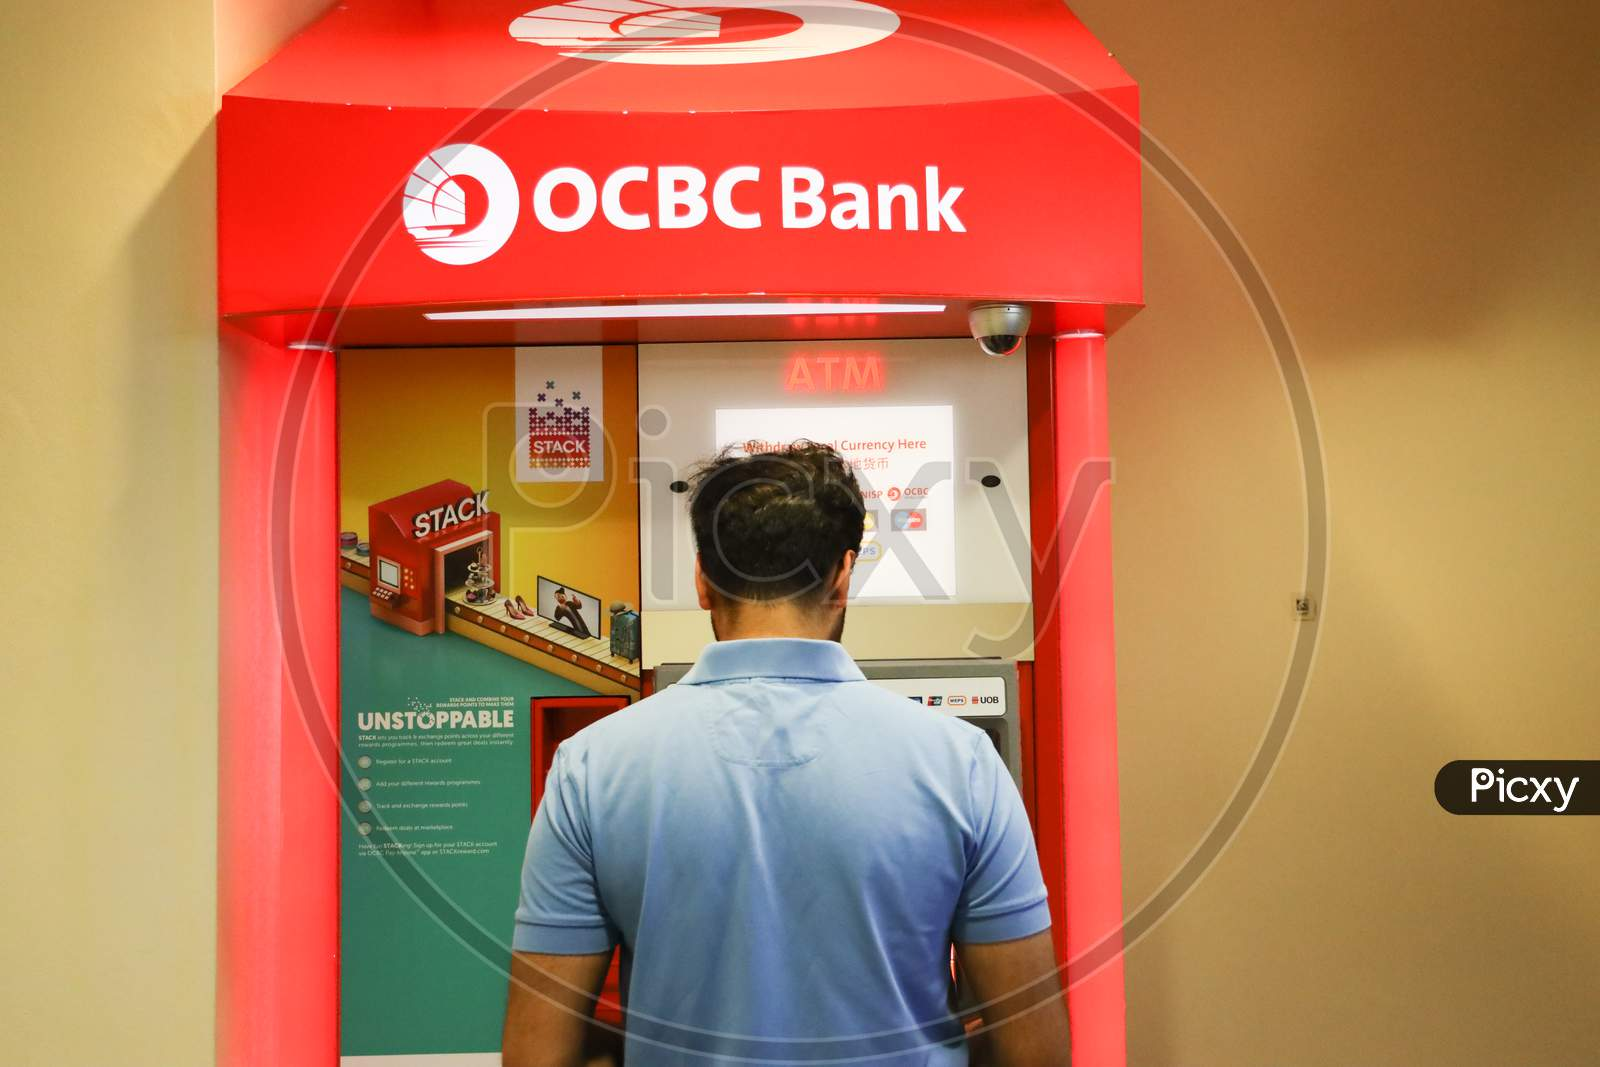 OCBC Bank ATM in Singapore.